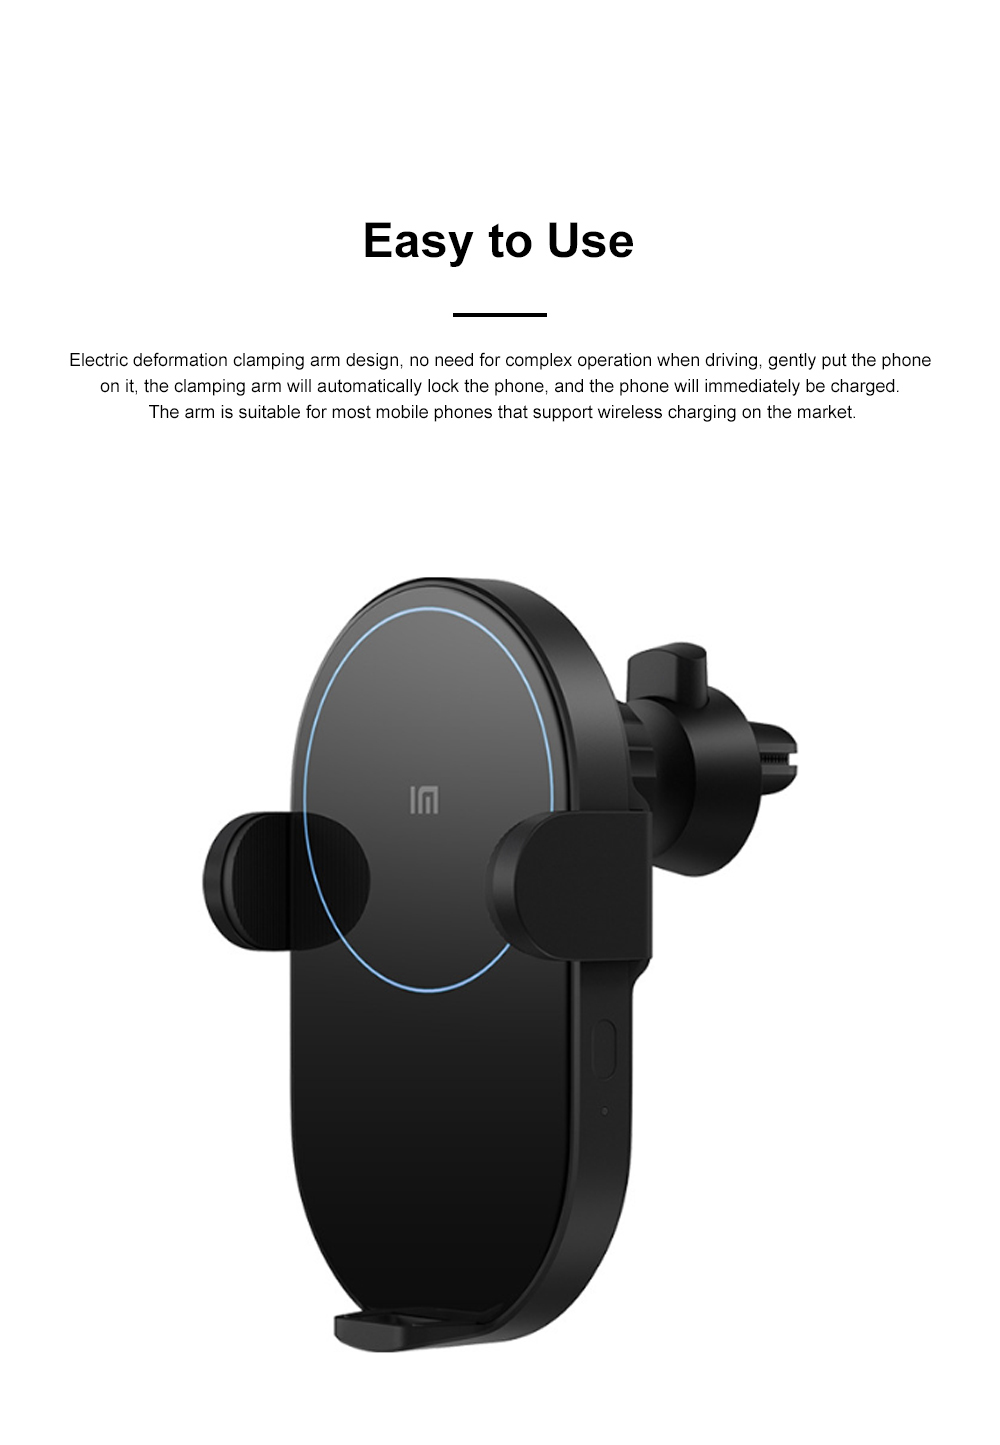 Xiaomi Car Wireless Charger Phone Holder 20W Wireless Air Vent Mount with Auto Clamping and Infrared Smart Sensor for MI 1